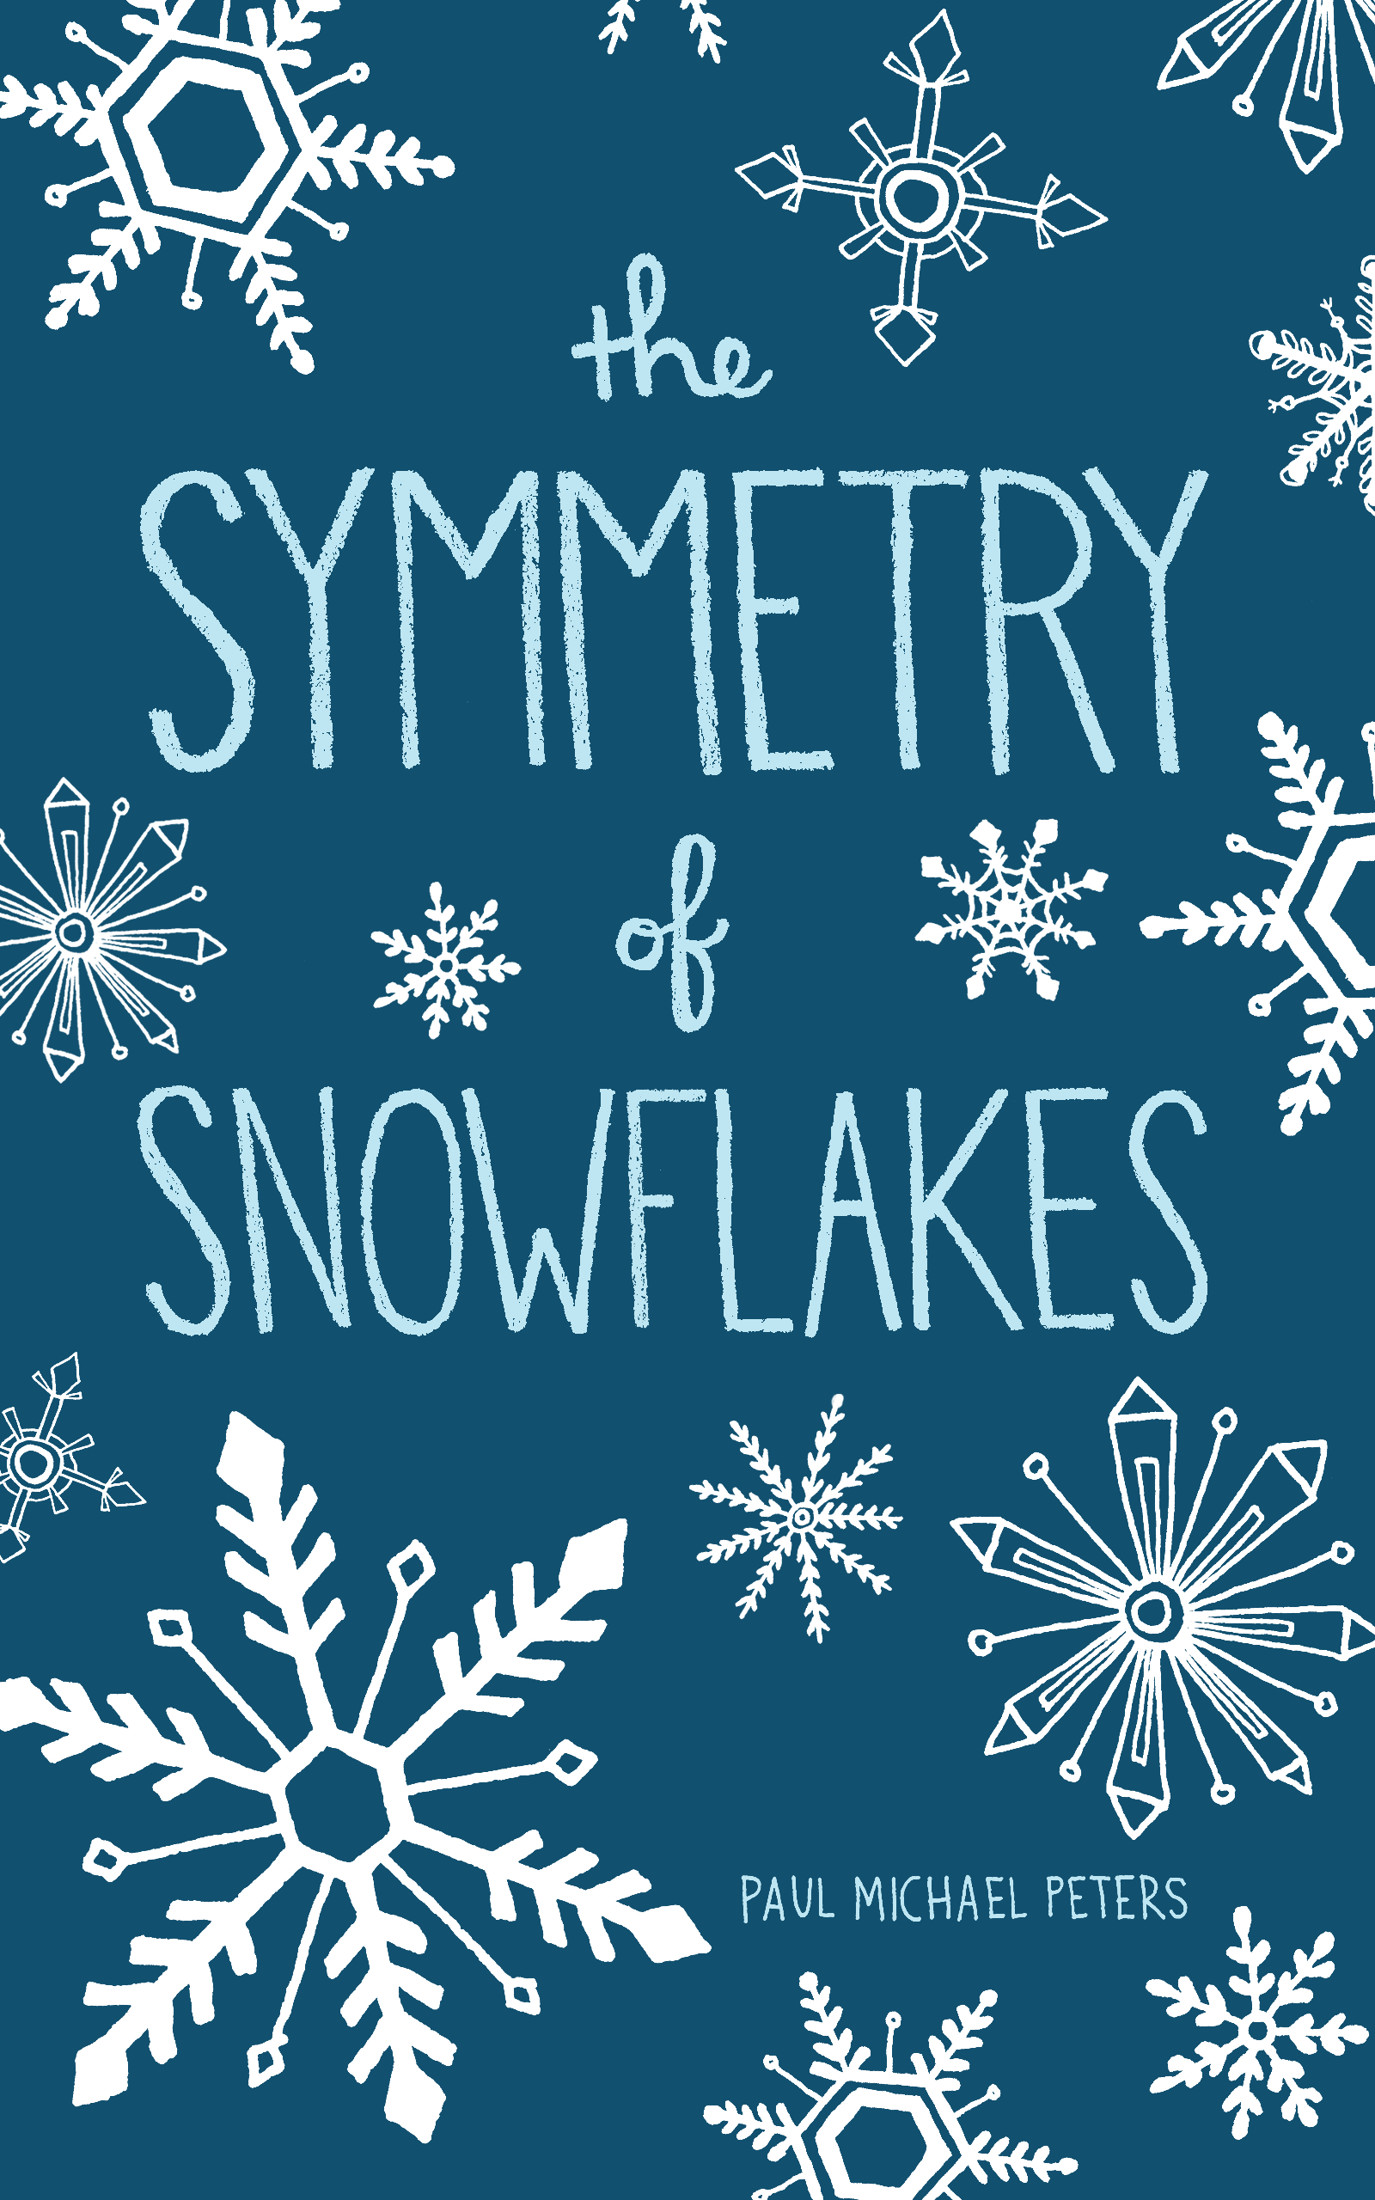 The Symmetry of Snowflakes - It's the day before Thanksgiving and twenty-nine-year-old business owner Hank Hanson is about to tackle the annual challenge of visiting every one of his relatives. The product of a blended family, Hank has parents, stepparents, and former stepparents—not to mention an assortment of siblings—and feels the responsibility to see them all.To give structure to his unconventional network, Hank compares it to a snowflake's intricate design. The only missing piece in his life, the element that would form that rare, perfect snowflake, is the love of an amazing woman.When Hank meets Erin at the Thanksgiving Day parade, it seems like she might just be that woman—until pressures start to mount with his family and business, and secrets about Erin's past spill out.